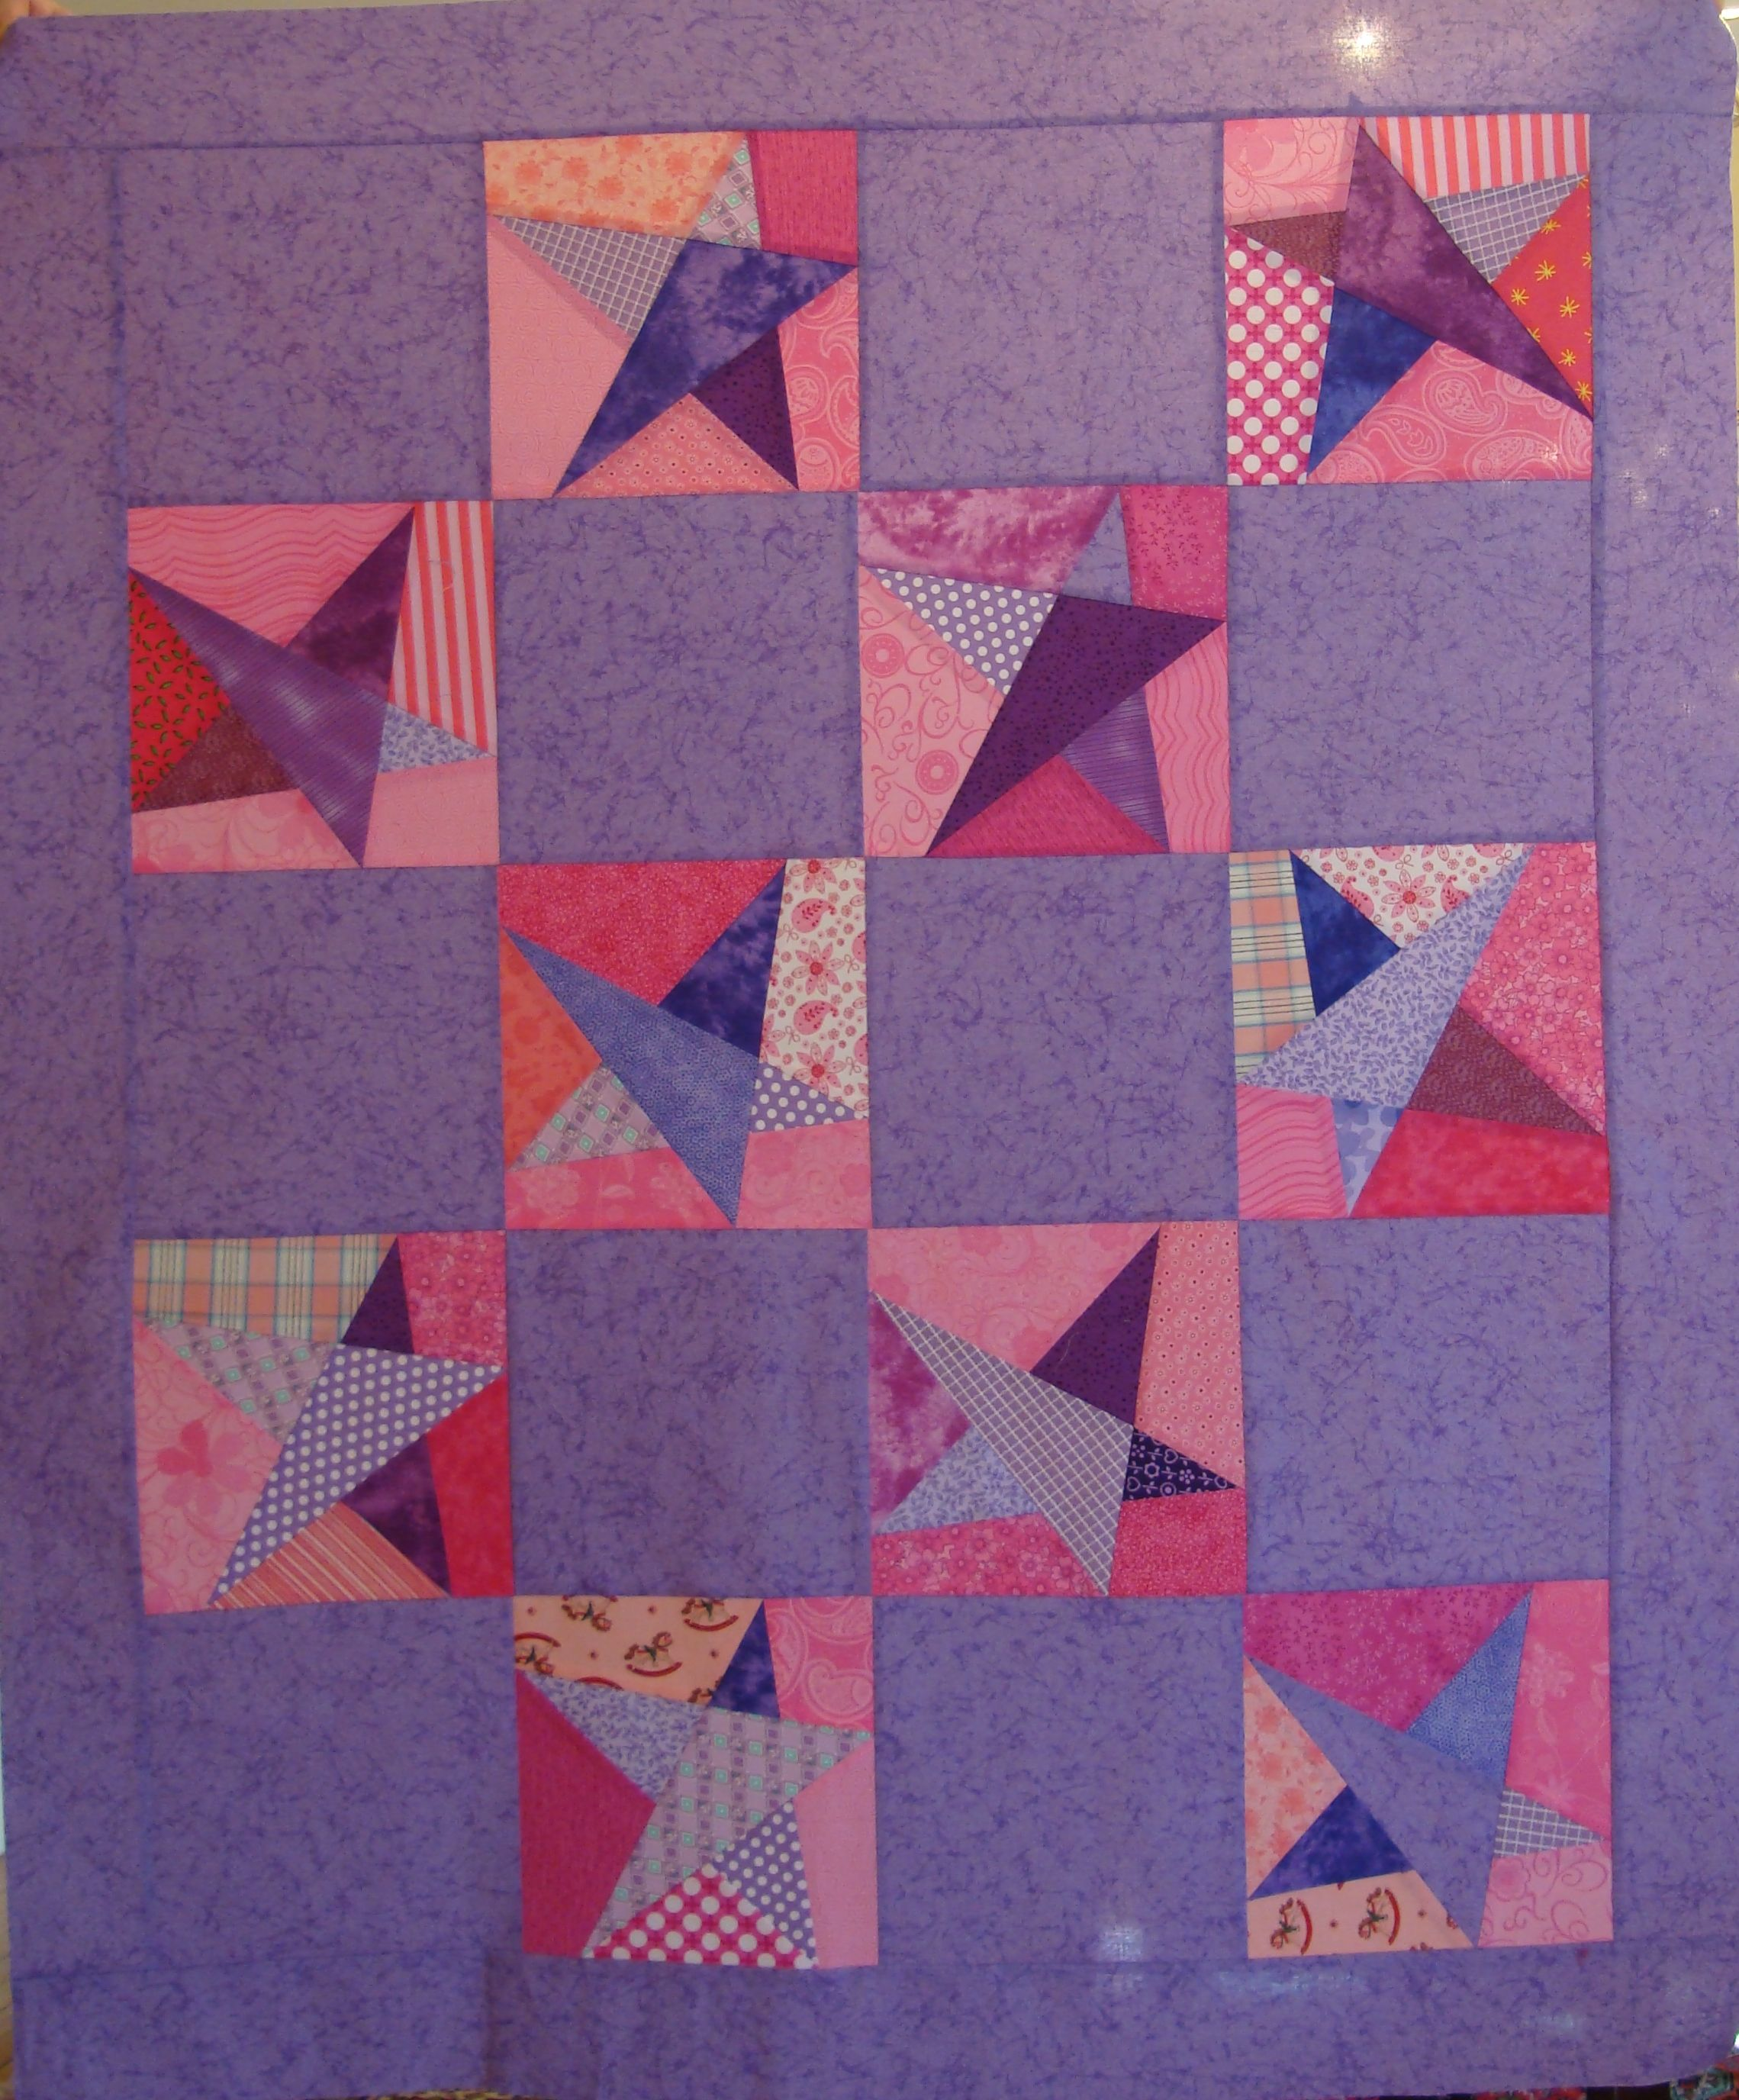 Quilt top for Project Linus | LINUS QUILT IDEAS A | Pinterest ... : project linus quilt patterns - Adamdwight.com